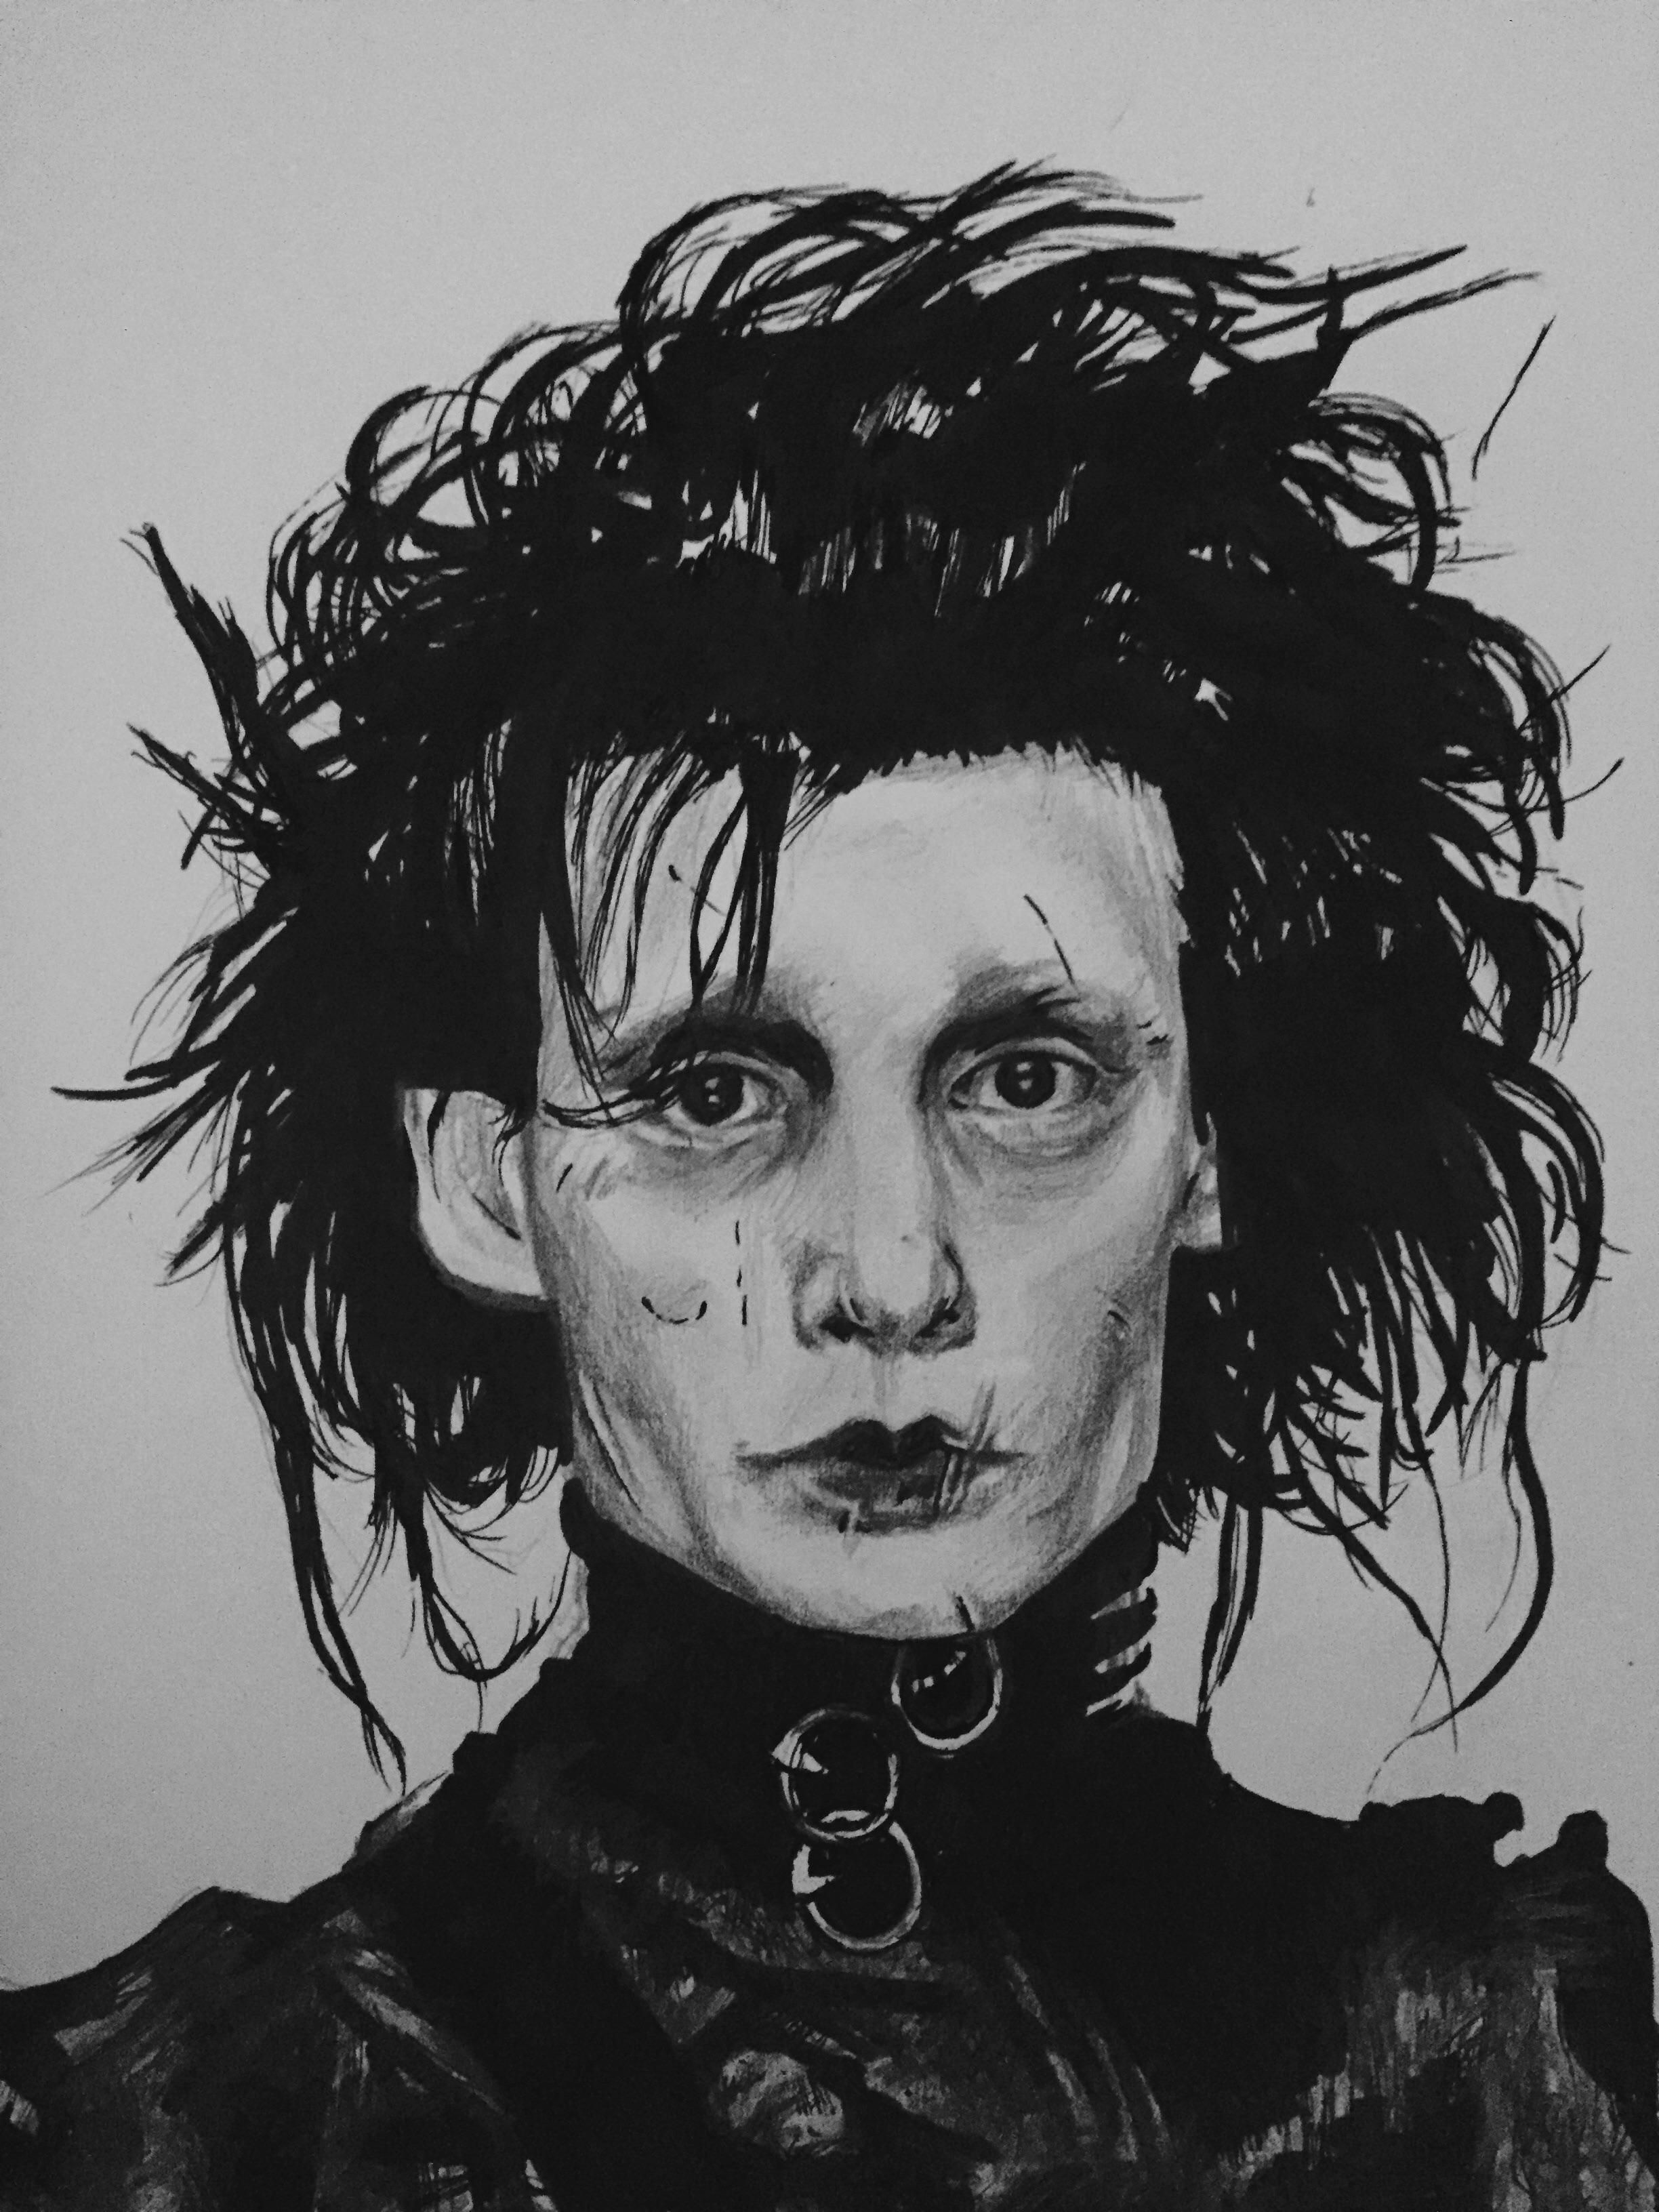 Edward Scissorhands By Lizerqueen Drawings Beetlejuice Fan Art